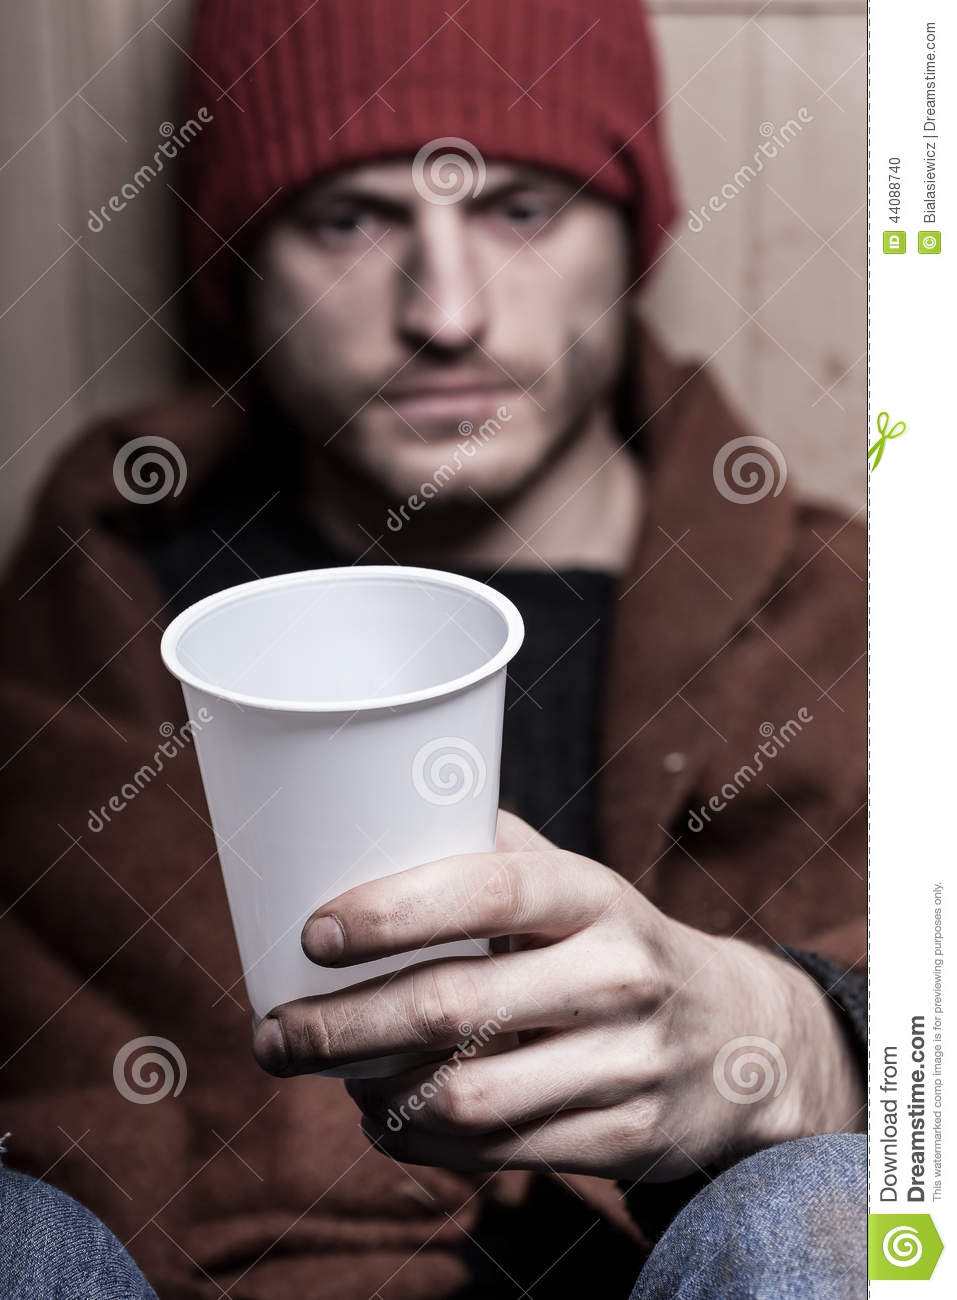 The Poor Man Asks For Money Stock Photo - Image of help